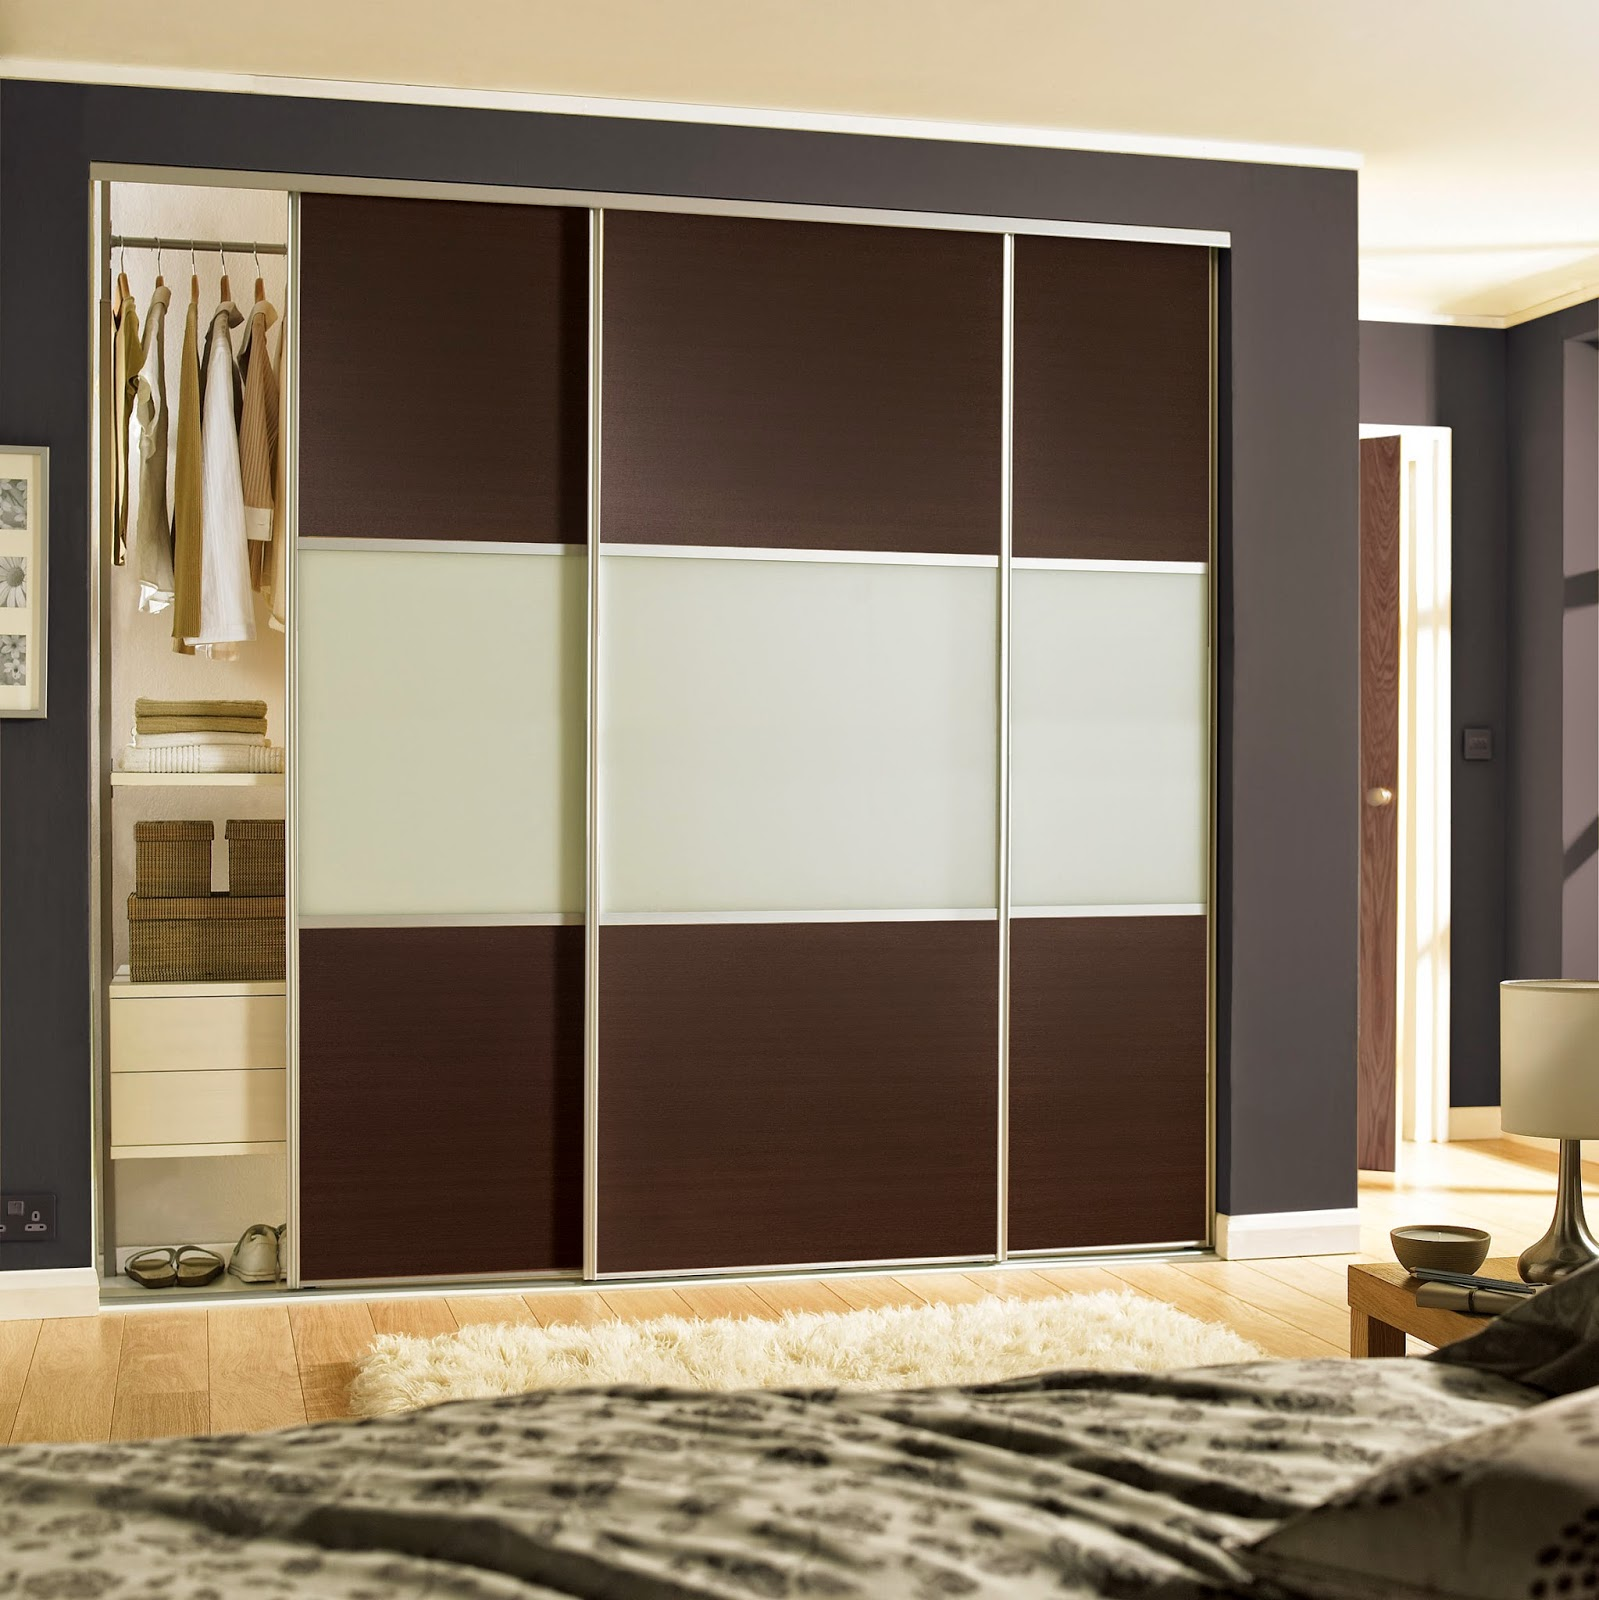 Design Your Bedroom Online Free Bedrooms Plus Sliding Wardrobe Doors And Fittings How To